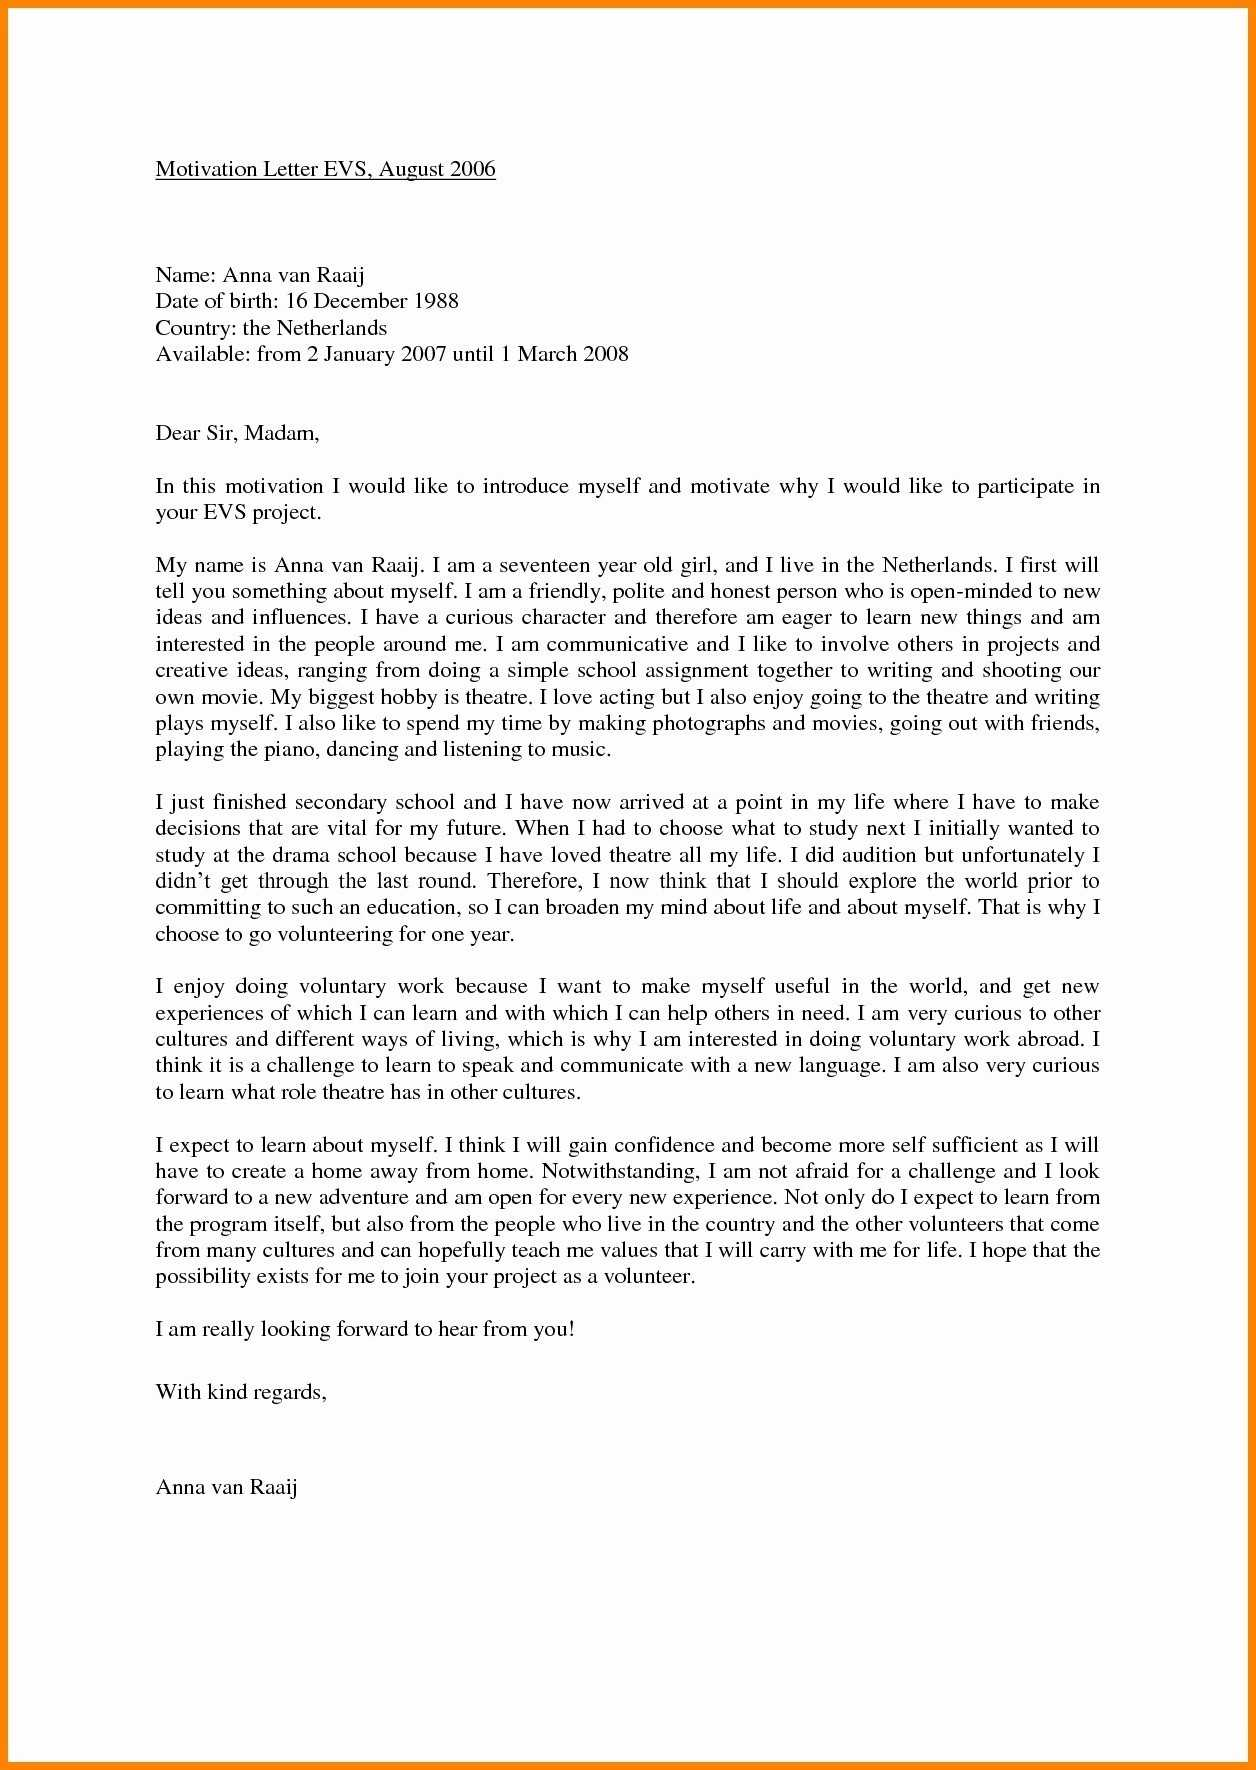 writing-a-motivational-letter-for-a-job-new-motivation-letter-example-for-job-application-valid-how-to-write-a-of-writing-a-motivational-letter-for-a-job